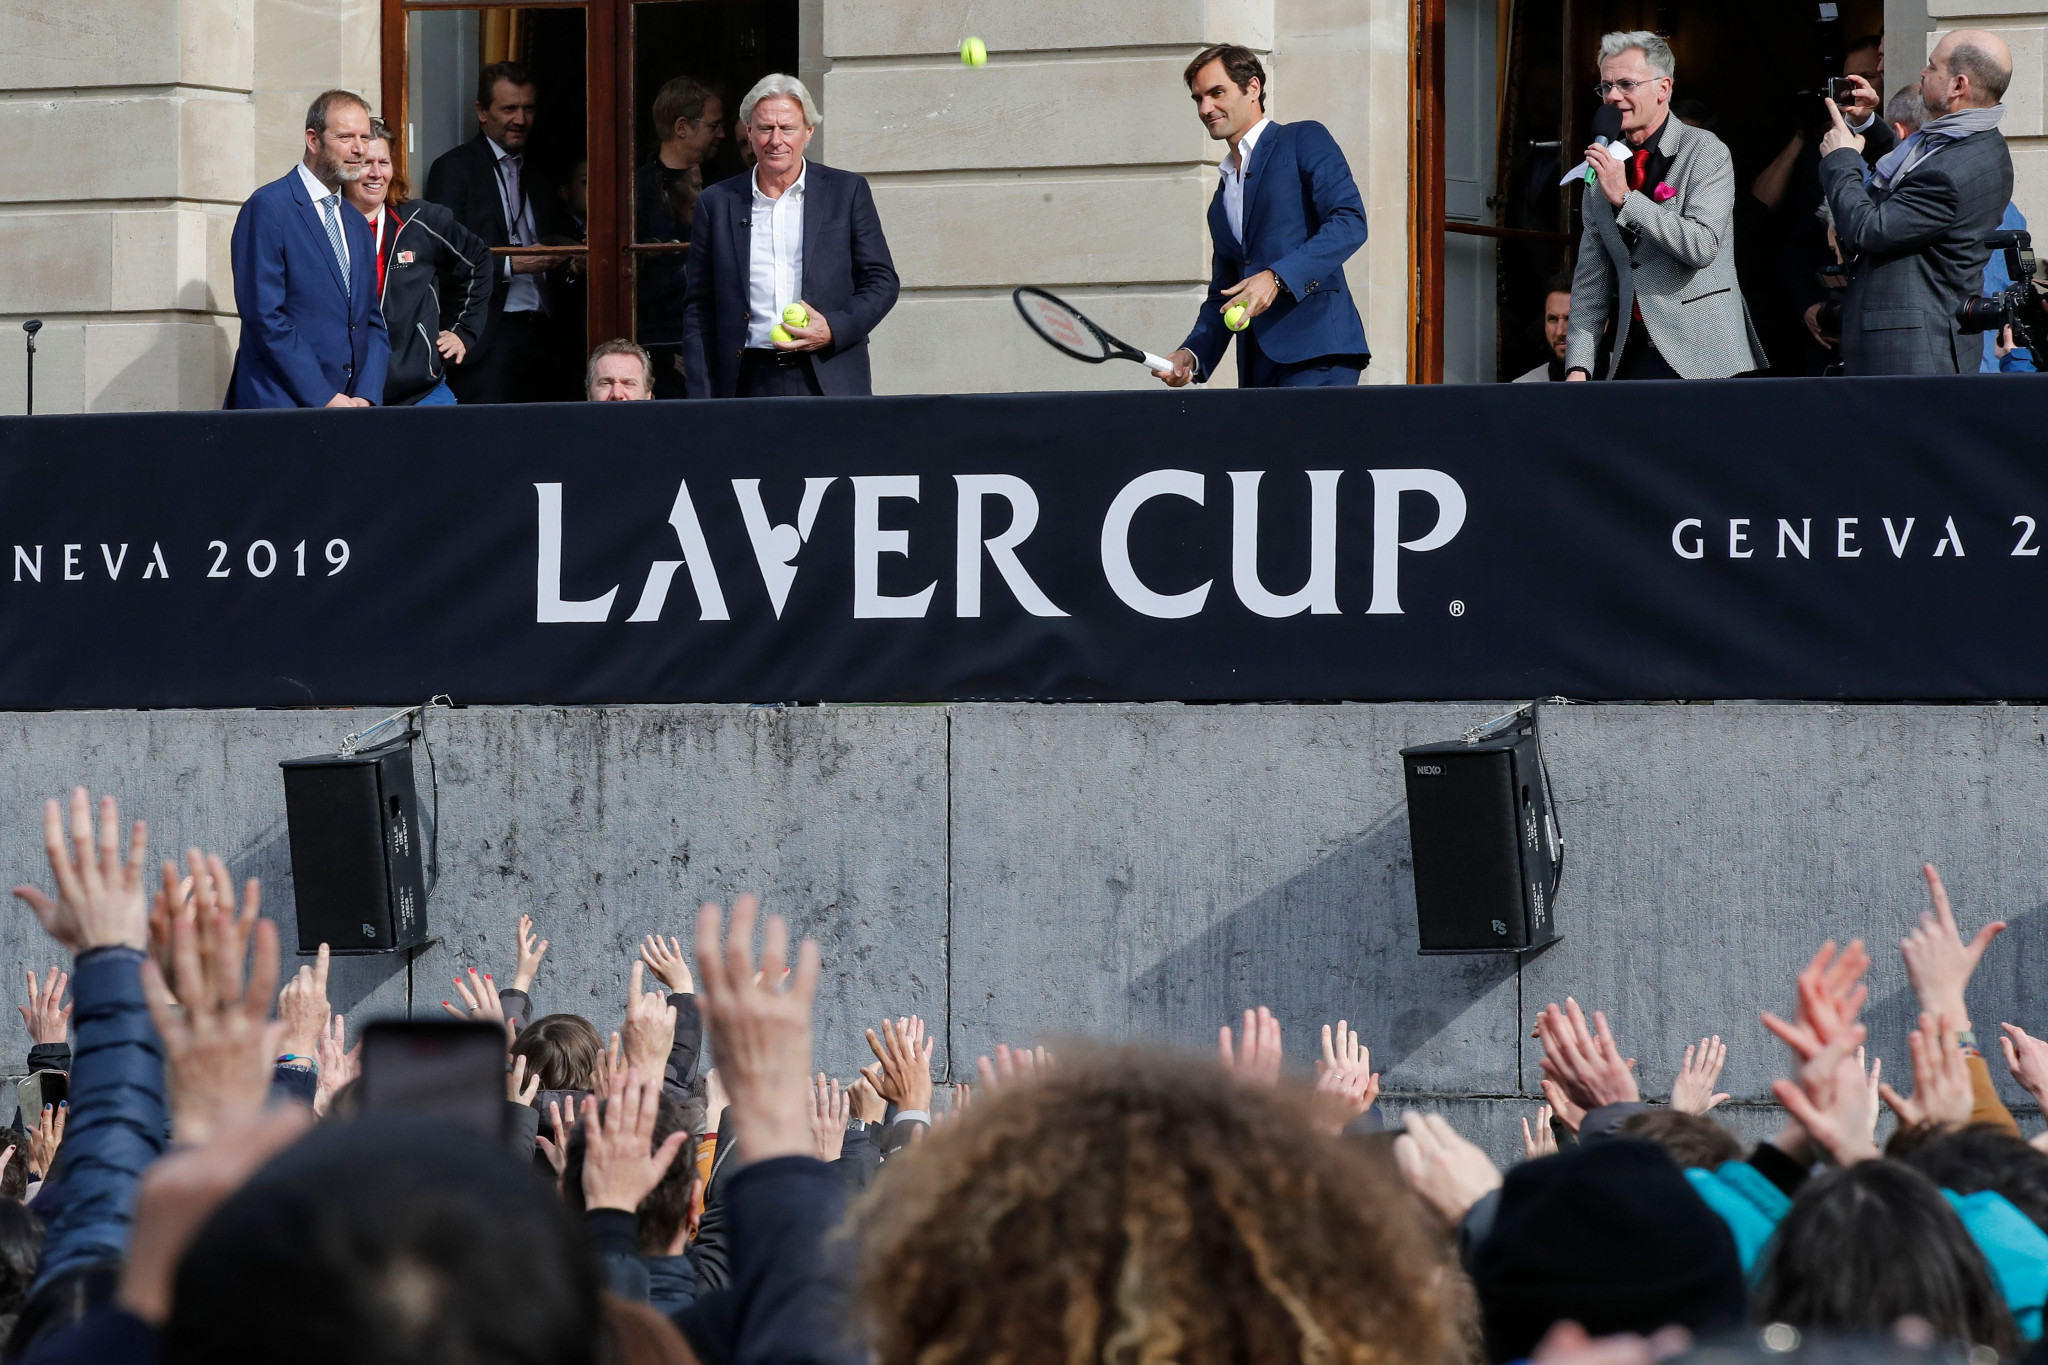 The Laver Cup has become part of the ATP Tour calendar ©Getty Images